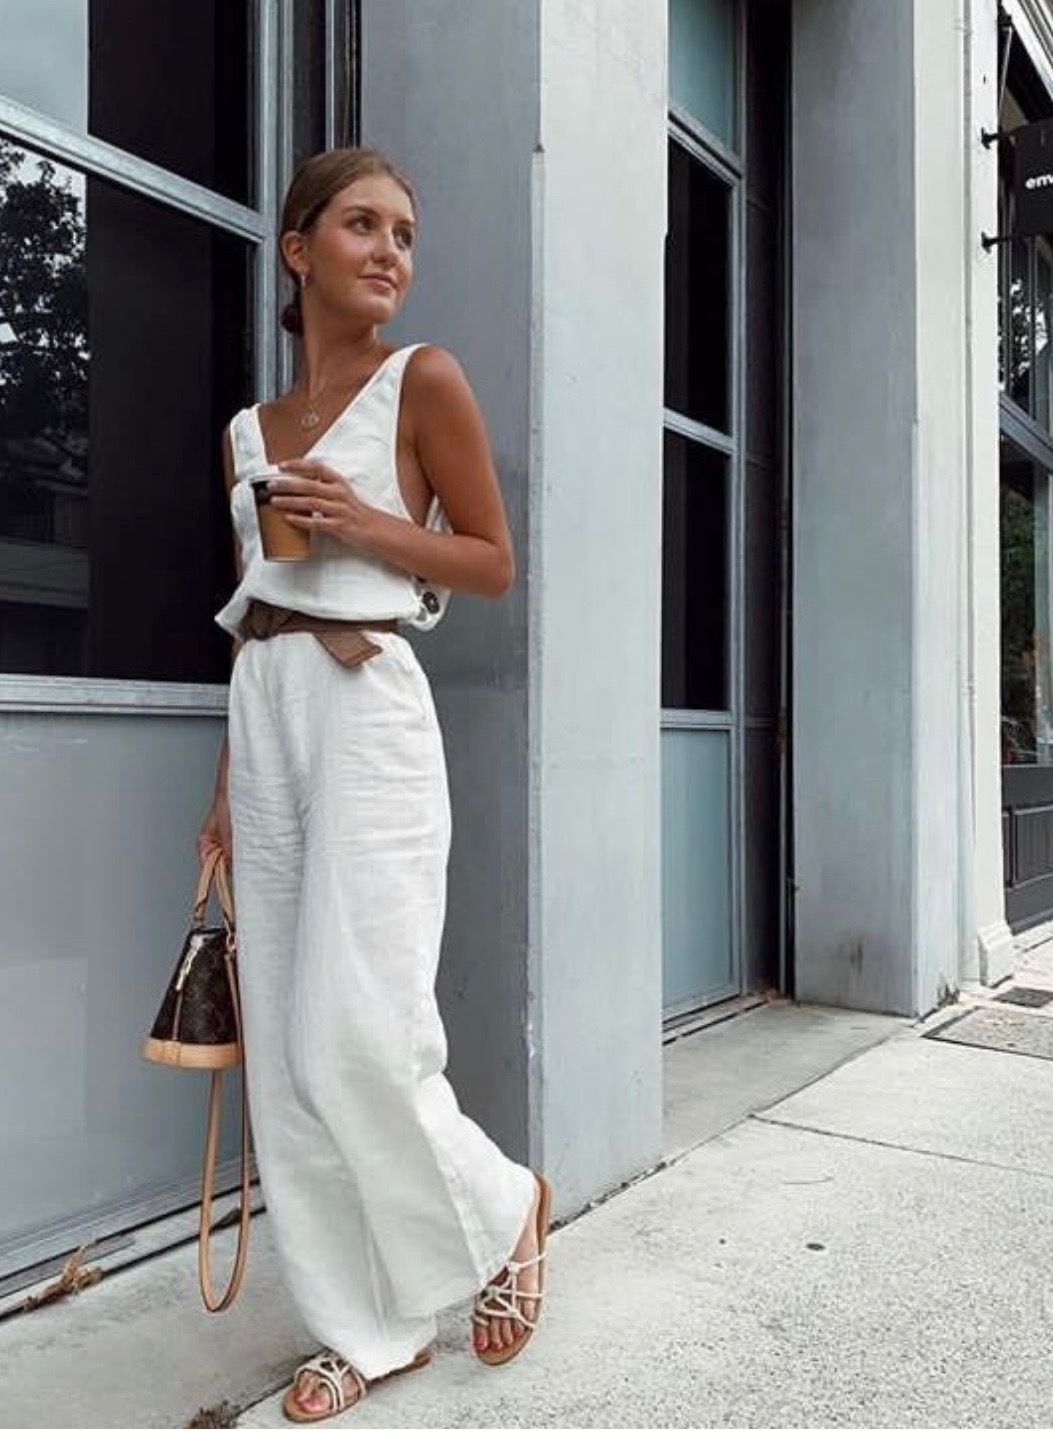 Pin by Alicia C. on Draped. | Simple summer outfits, Summer